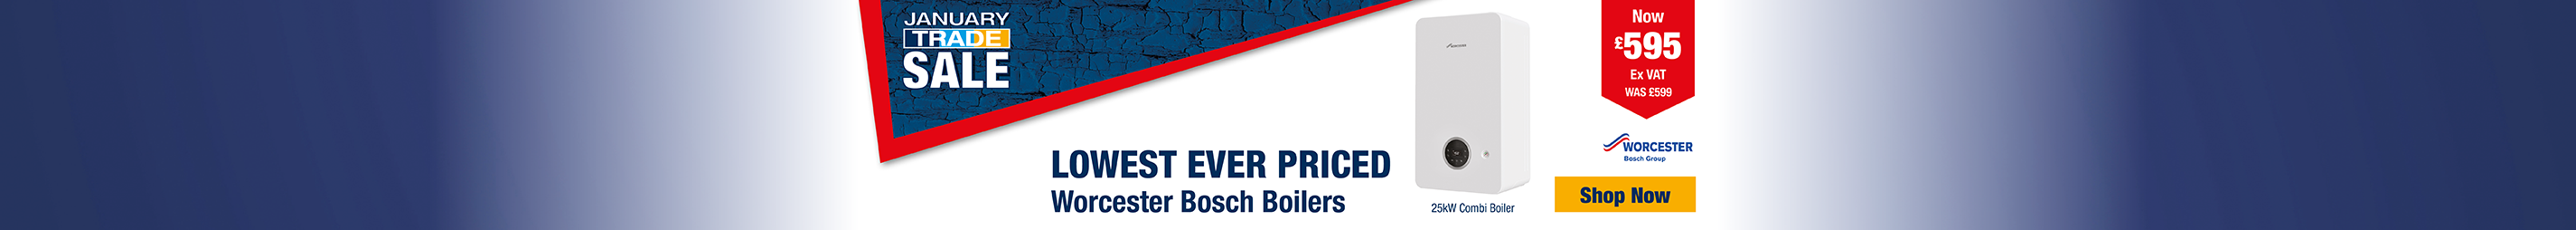 Lowest Ever Priced Worcester Bosch Boilers